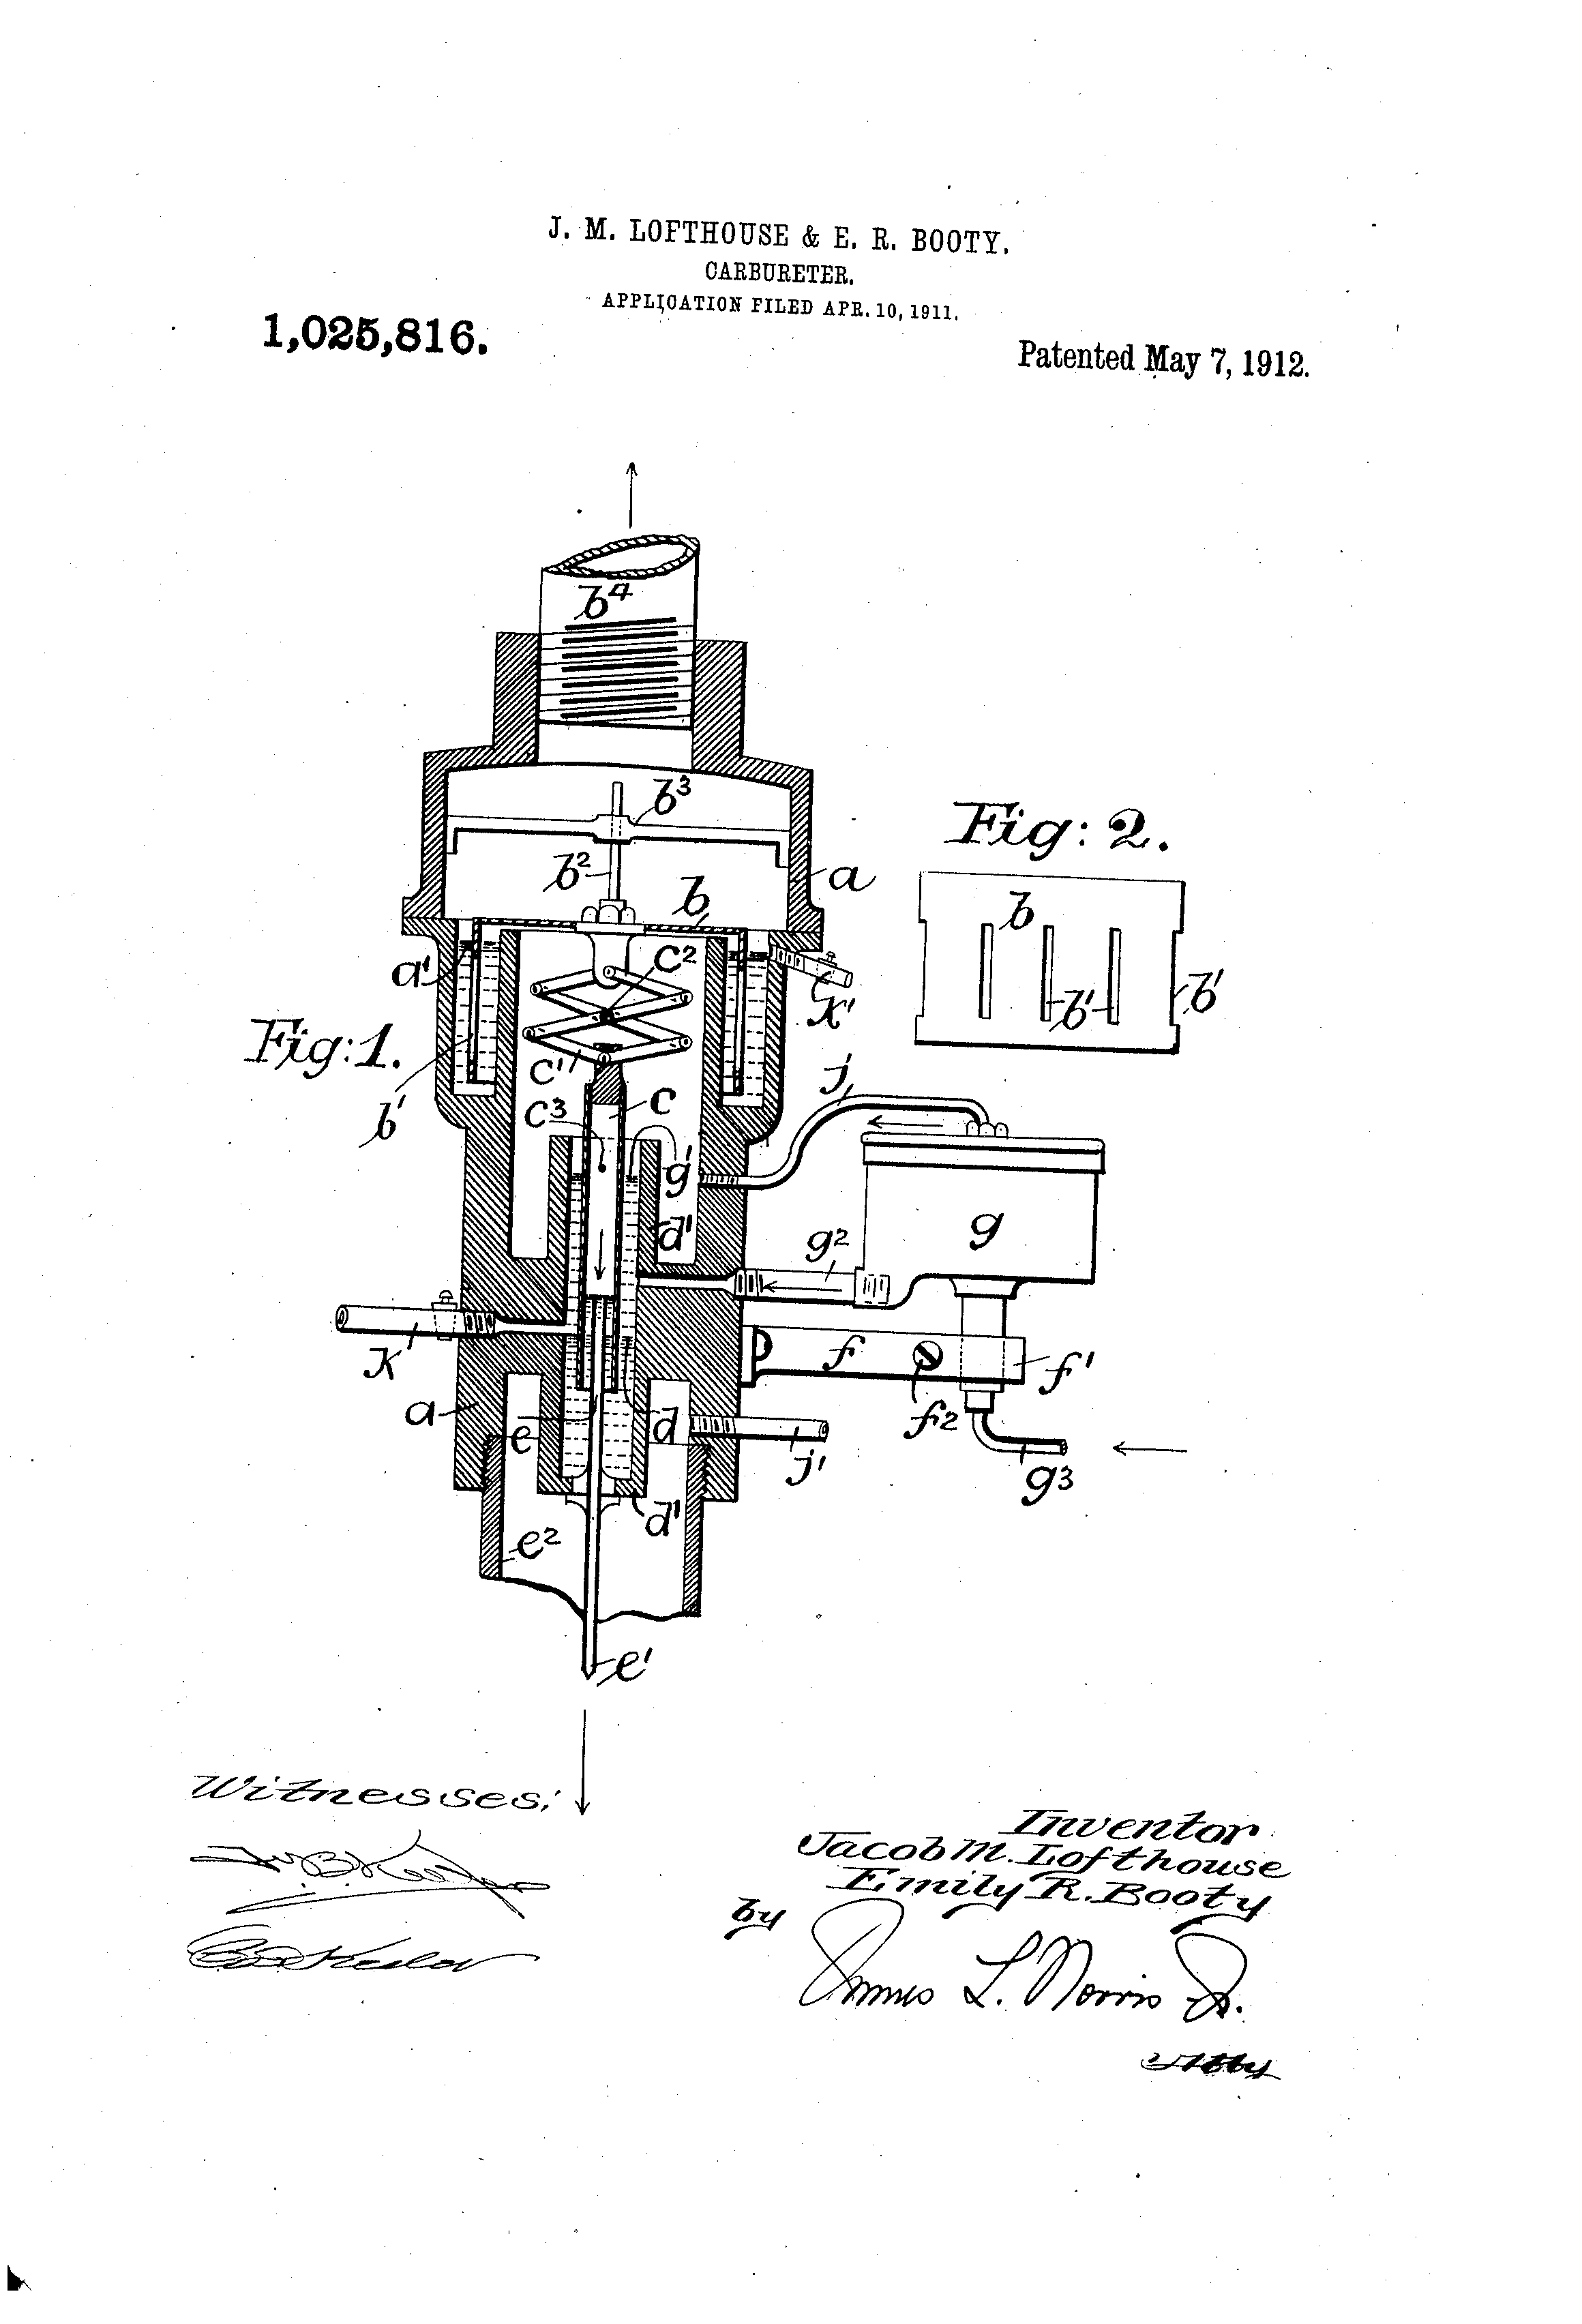 The Booty-Lofthouse apparatus US Patent, Google Patents